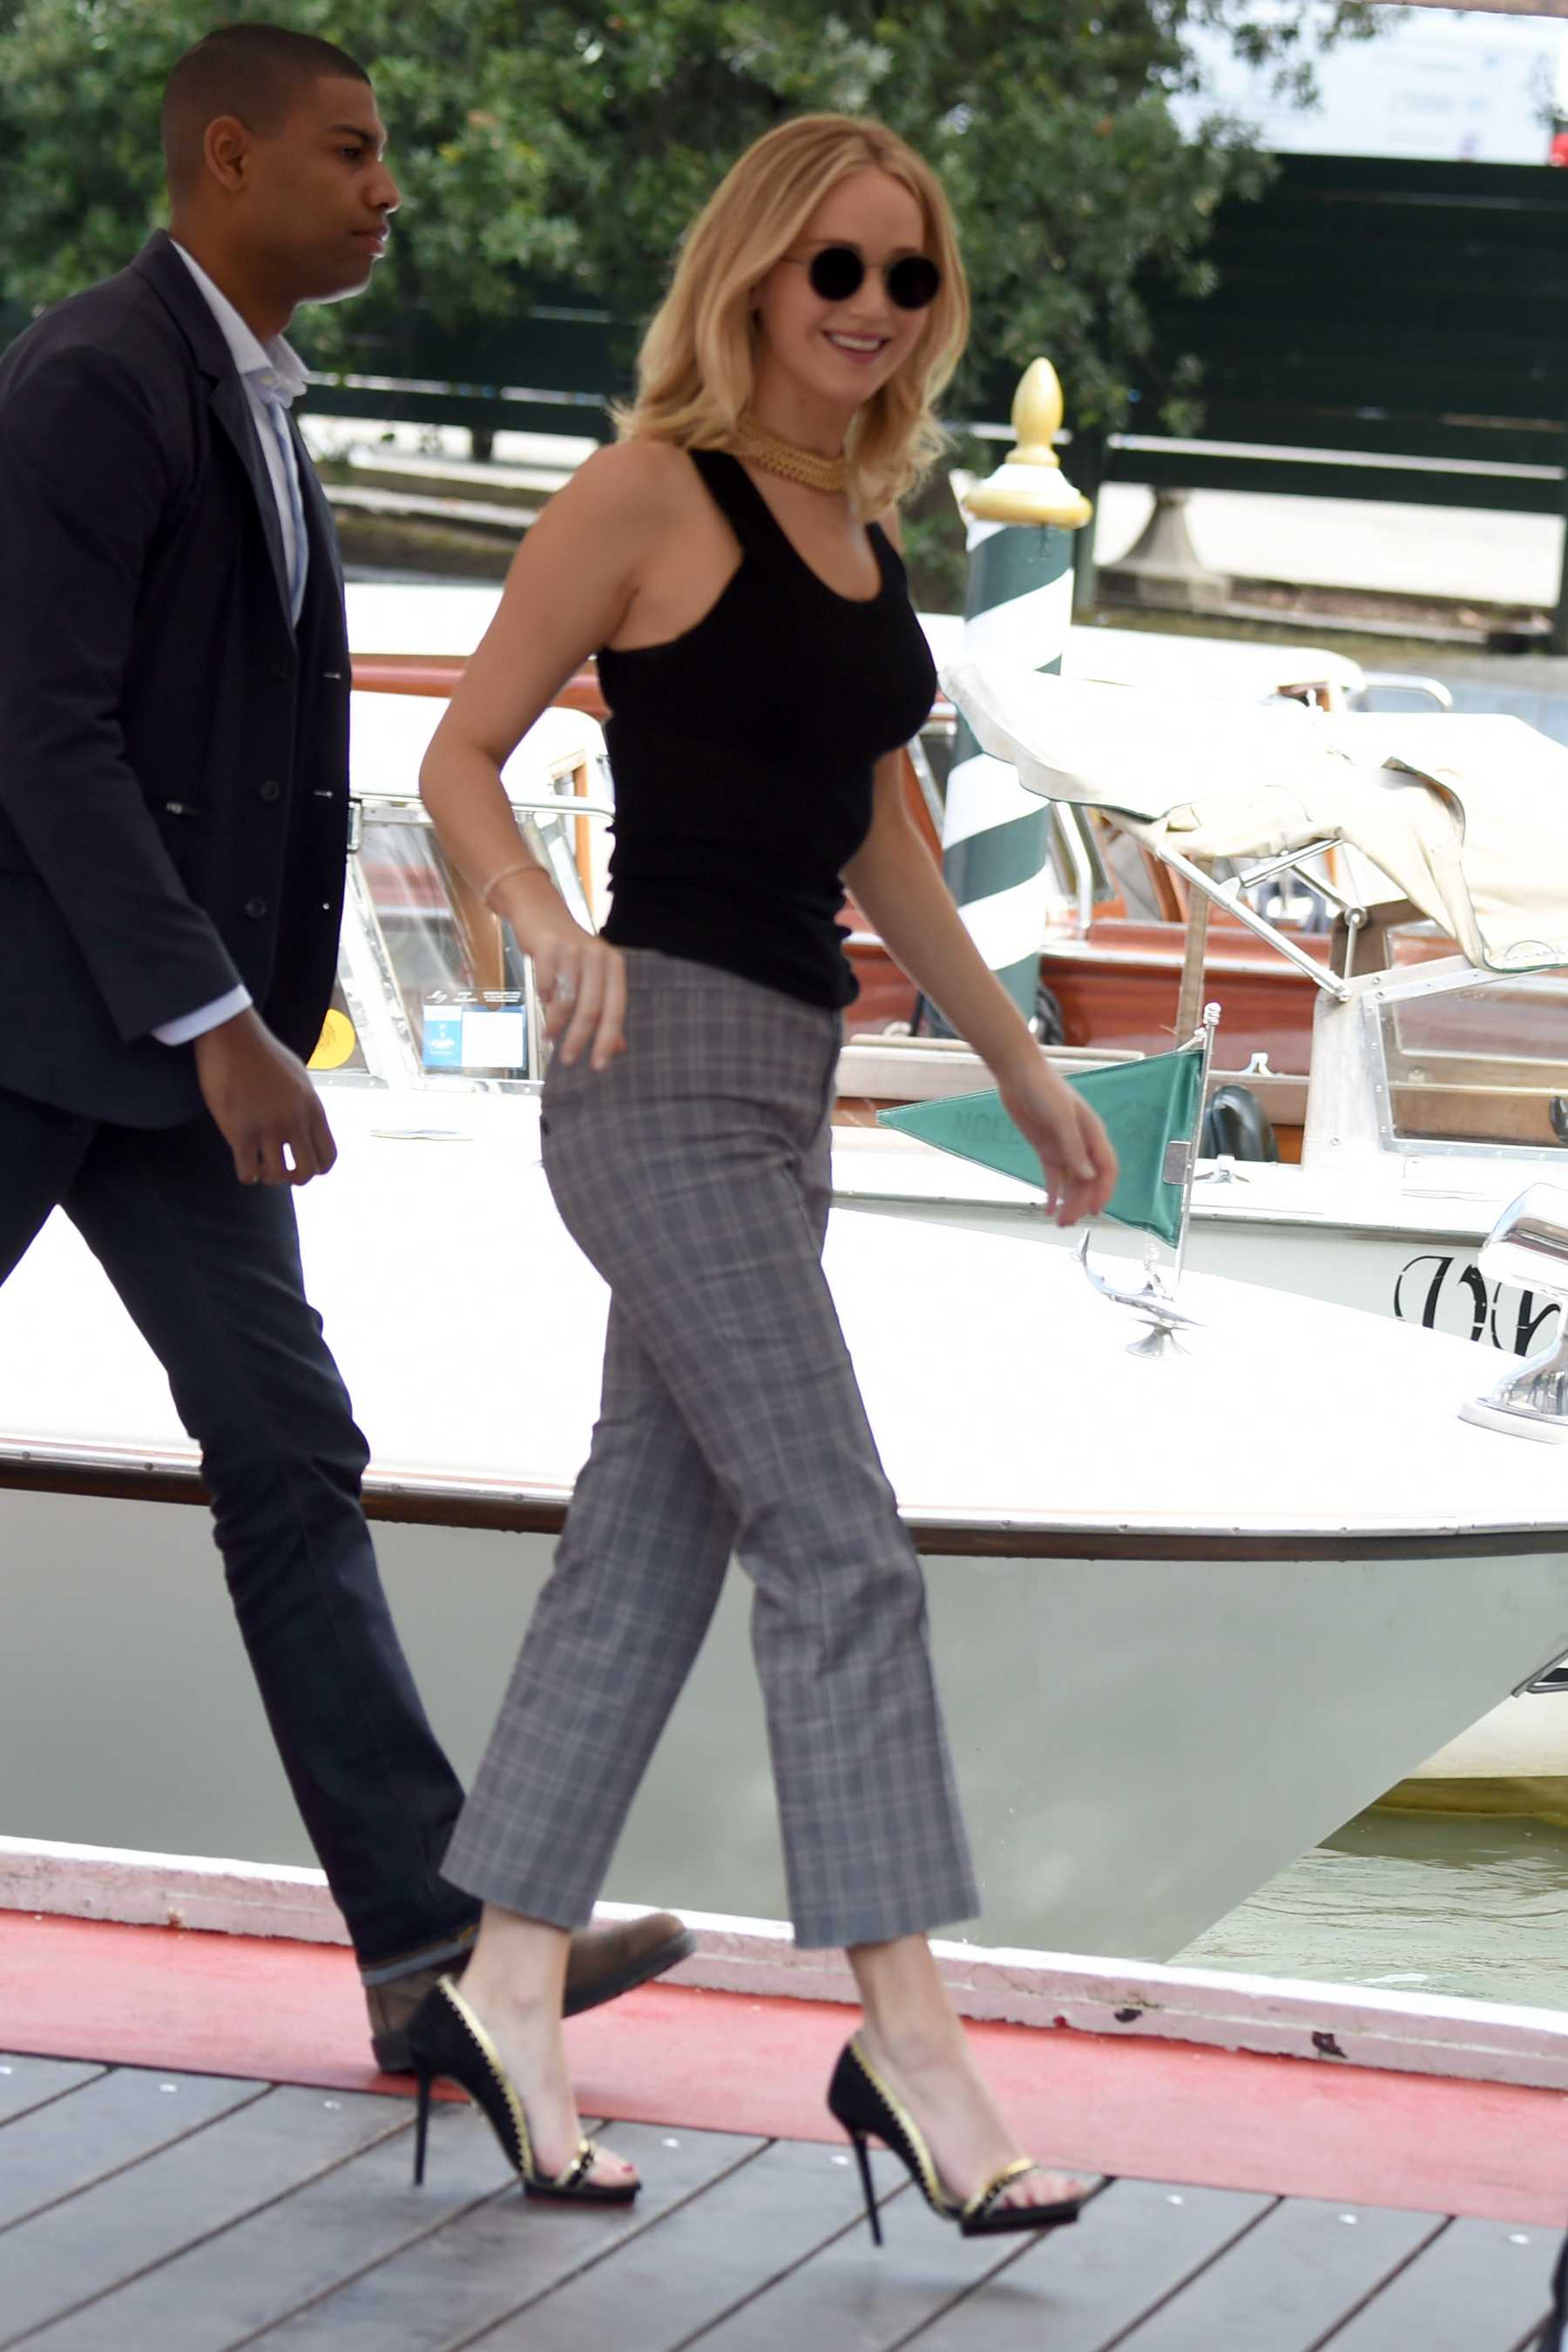 http://jenniferlawrencedaily.com/gallery/albums/userpics/10001/Jennifer_Lawrence_-_Arrives_at_Excelsior_Hotel_during_the_74th_Venice_Film_Festival_in_Italy_on_September_5-04.jpg